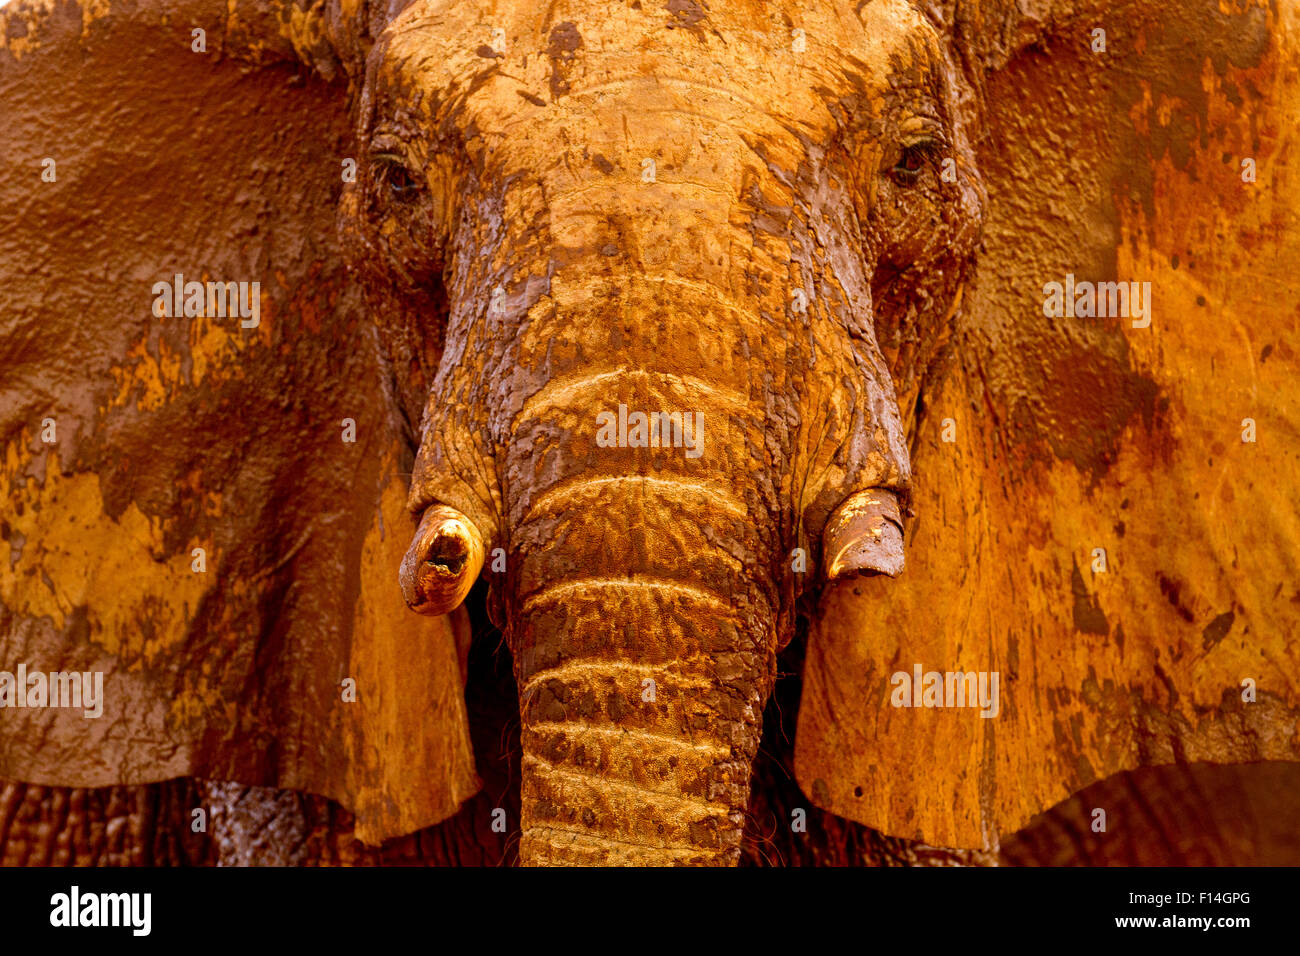 African elephant (Loxodonta africana) male covered with mud at a water hole, Tsavo East National Park, Kenya. August. - Stock Image